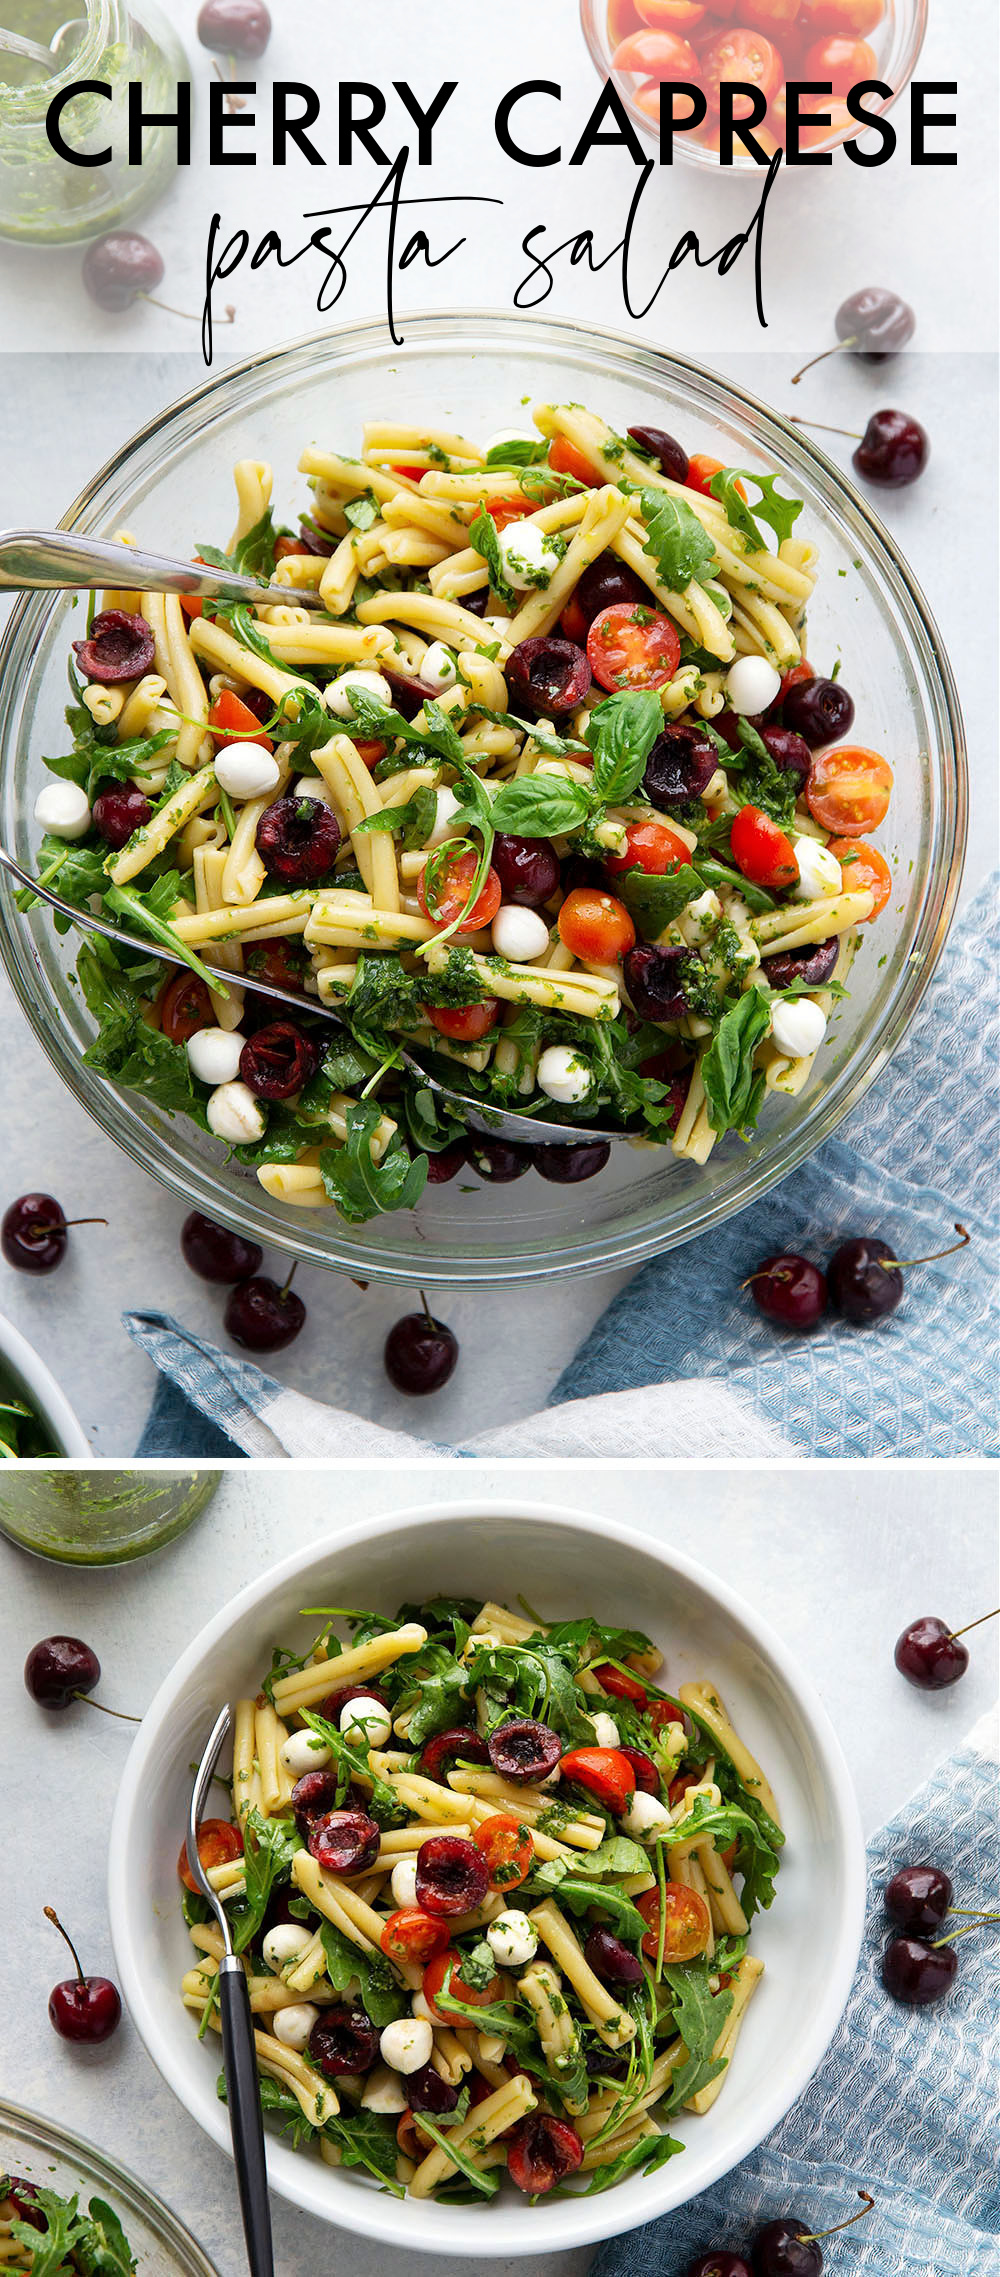 Cherry caprese pasta salad is loaded with juicy cherries, rich mozzarella, and tossed in an herby basil vinaigrette. - fast to make and a hit side dish at any cookout!